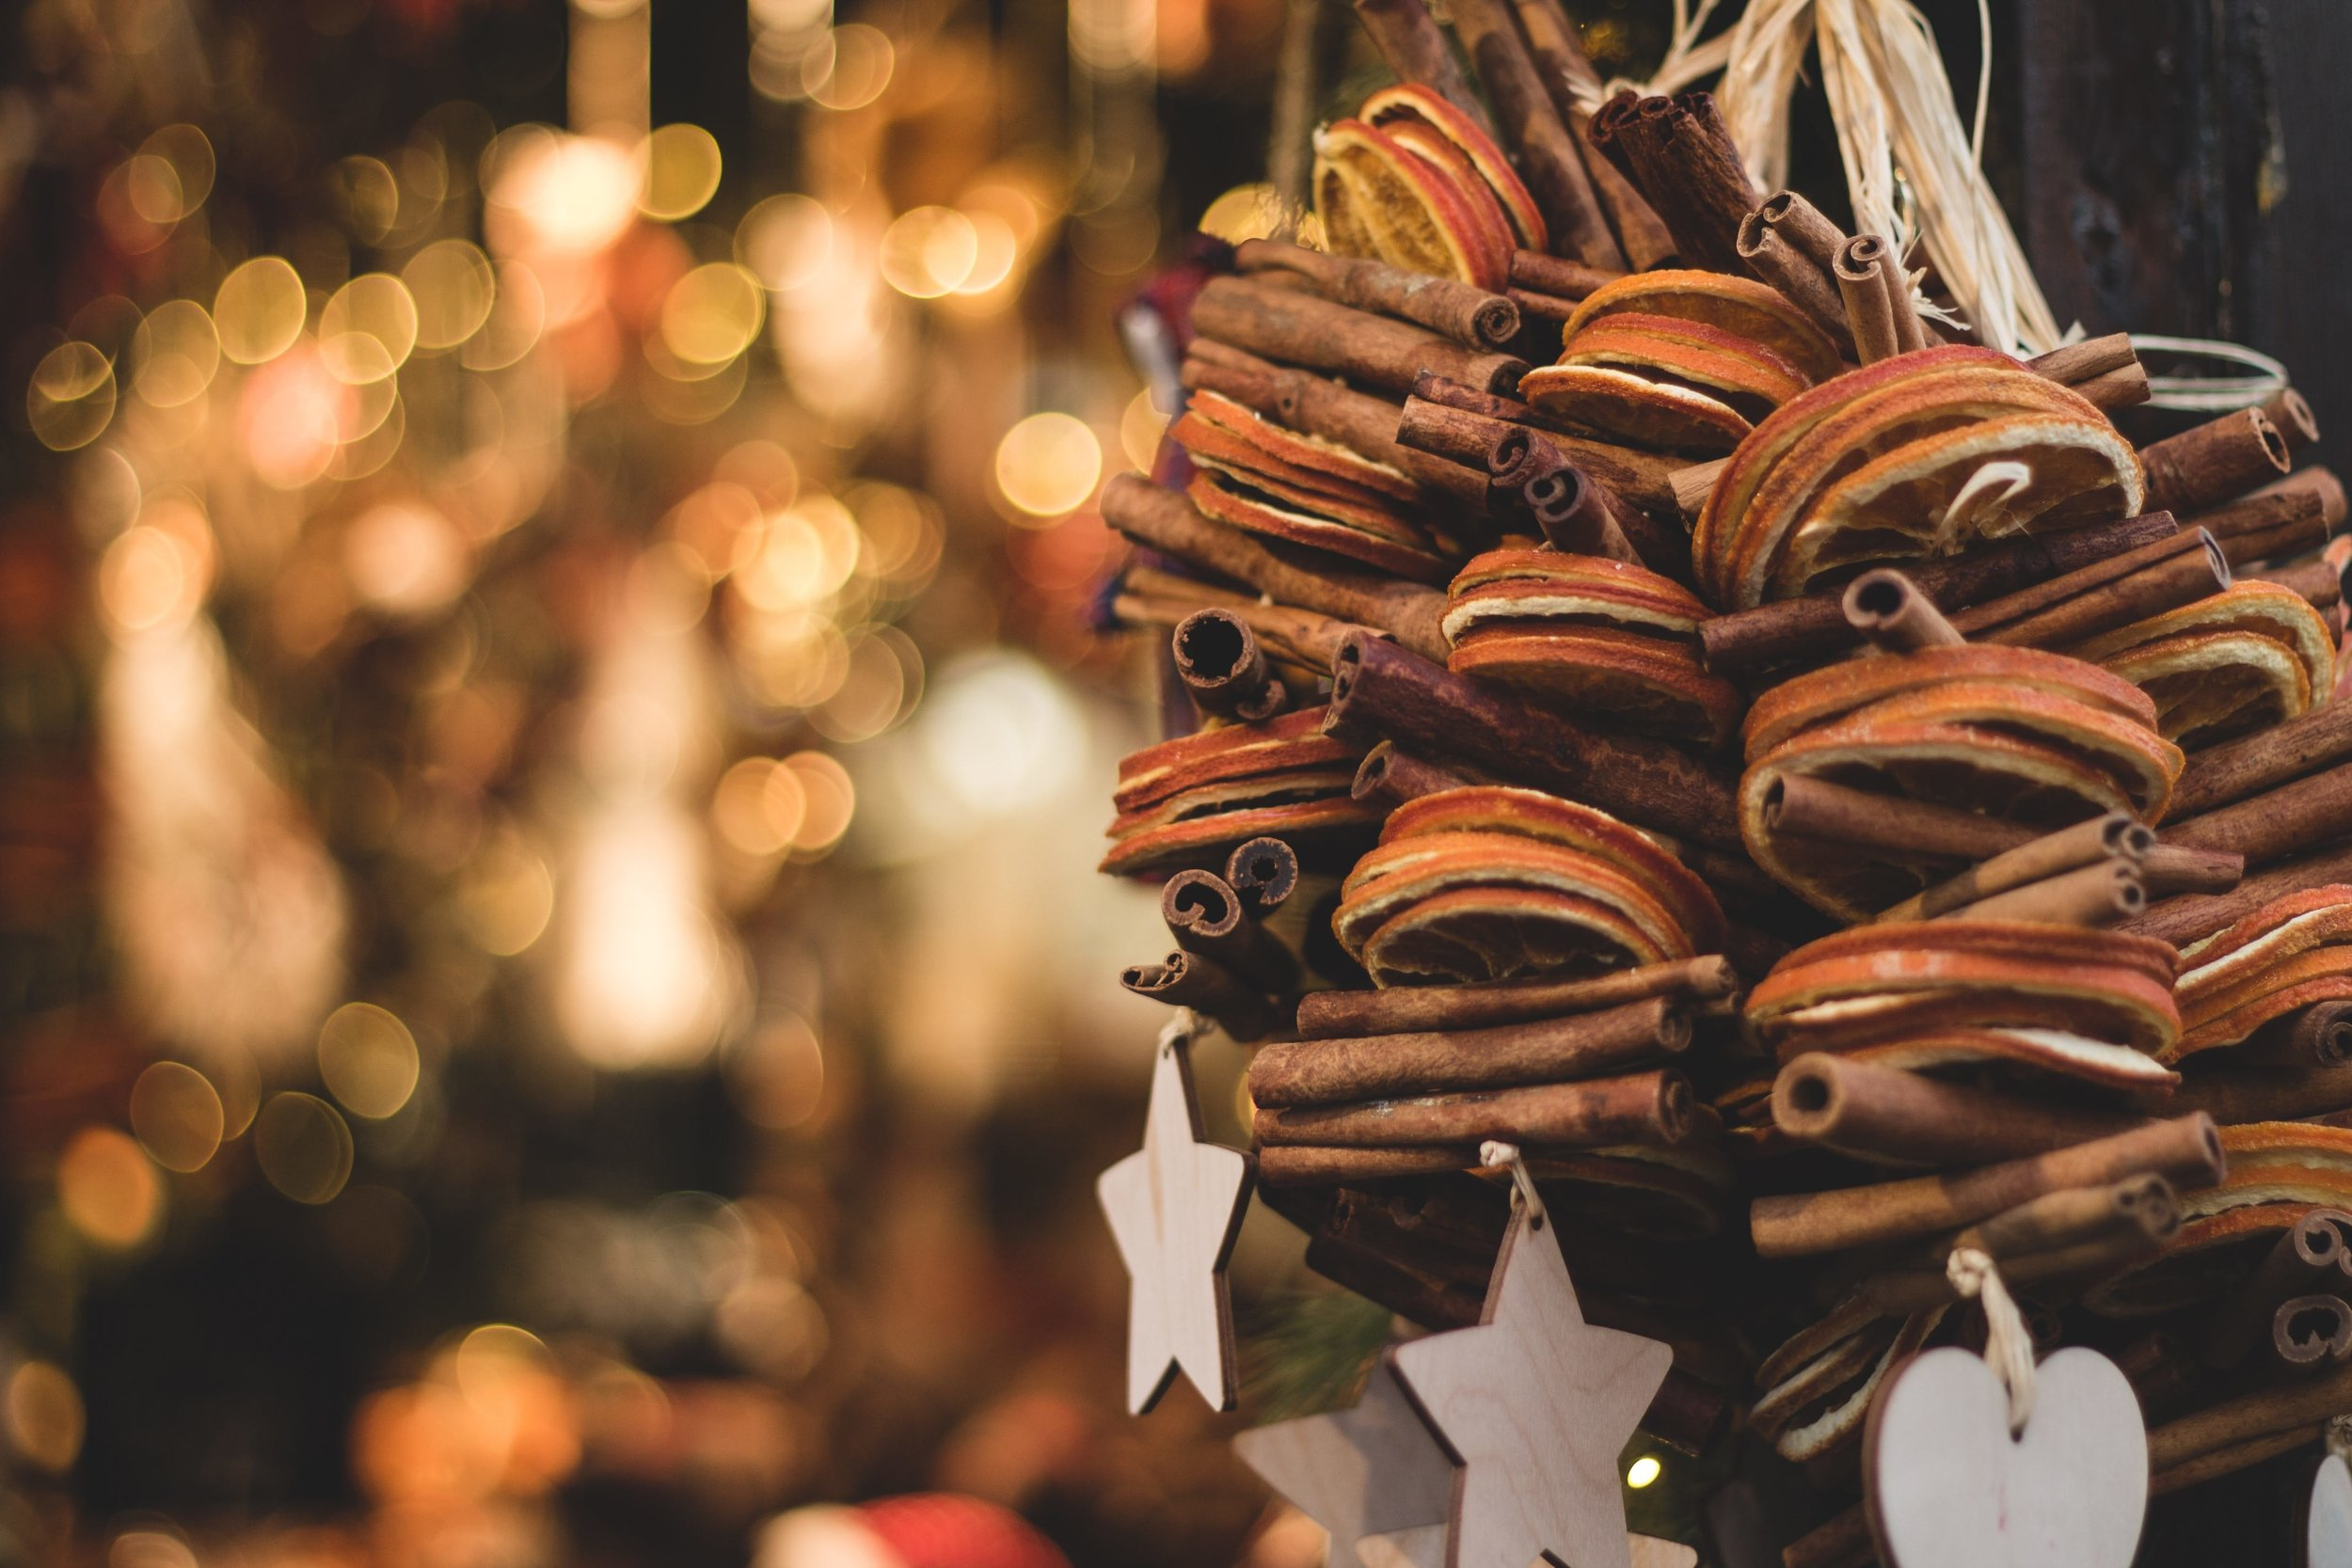 10. A German Christmas Market - Carols, mulled wine and glittering ornaments bring winter cheer and the gift of giving to all who attend. For this festive fundraiser rent stalls to local crafts-folk, sell tickets for mulled wine and enrol friends and family in baking mince pies.